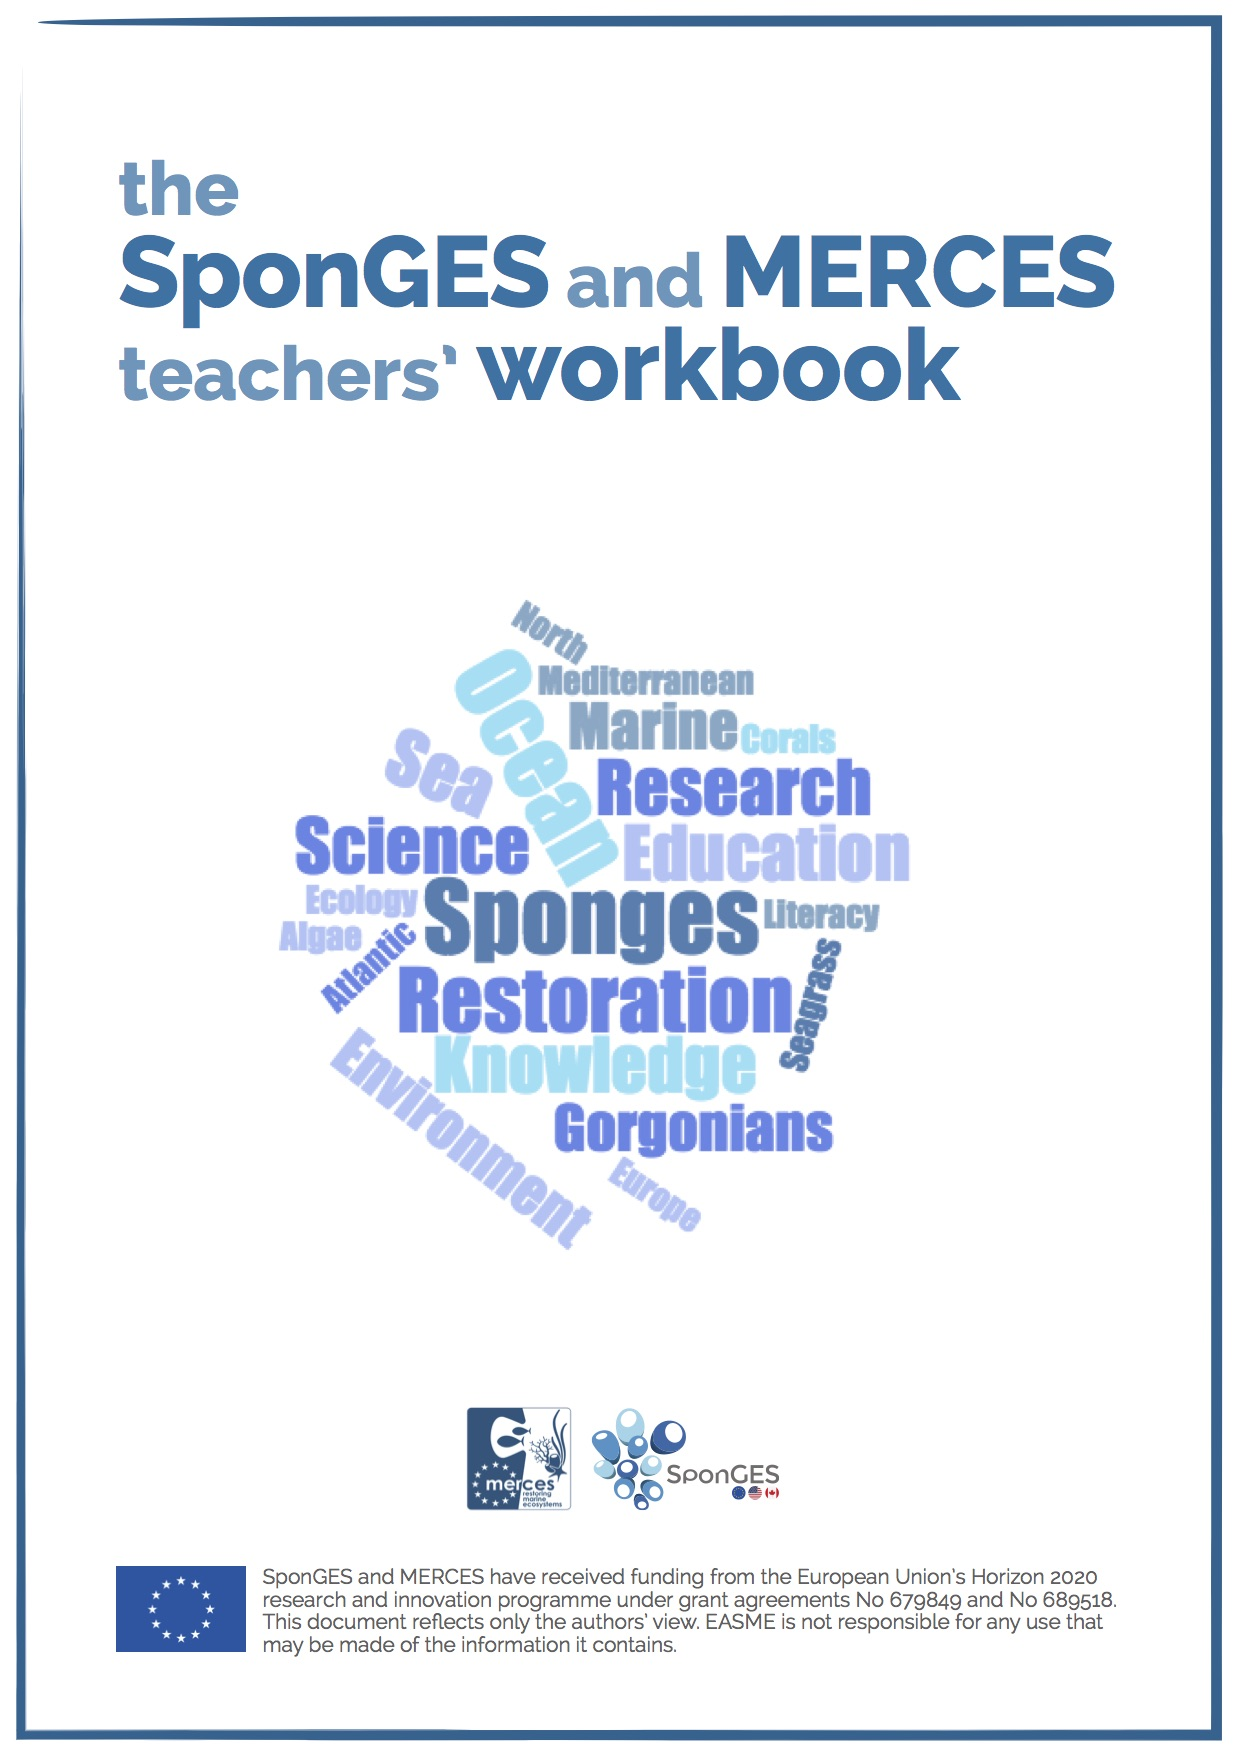 Cover of the SponGES and MERCES teachers' workbook